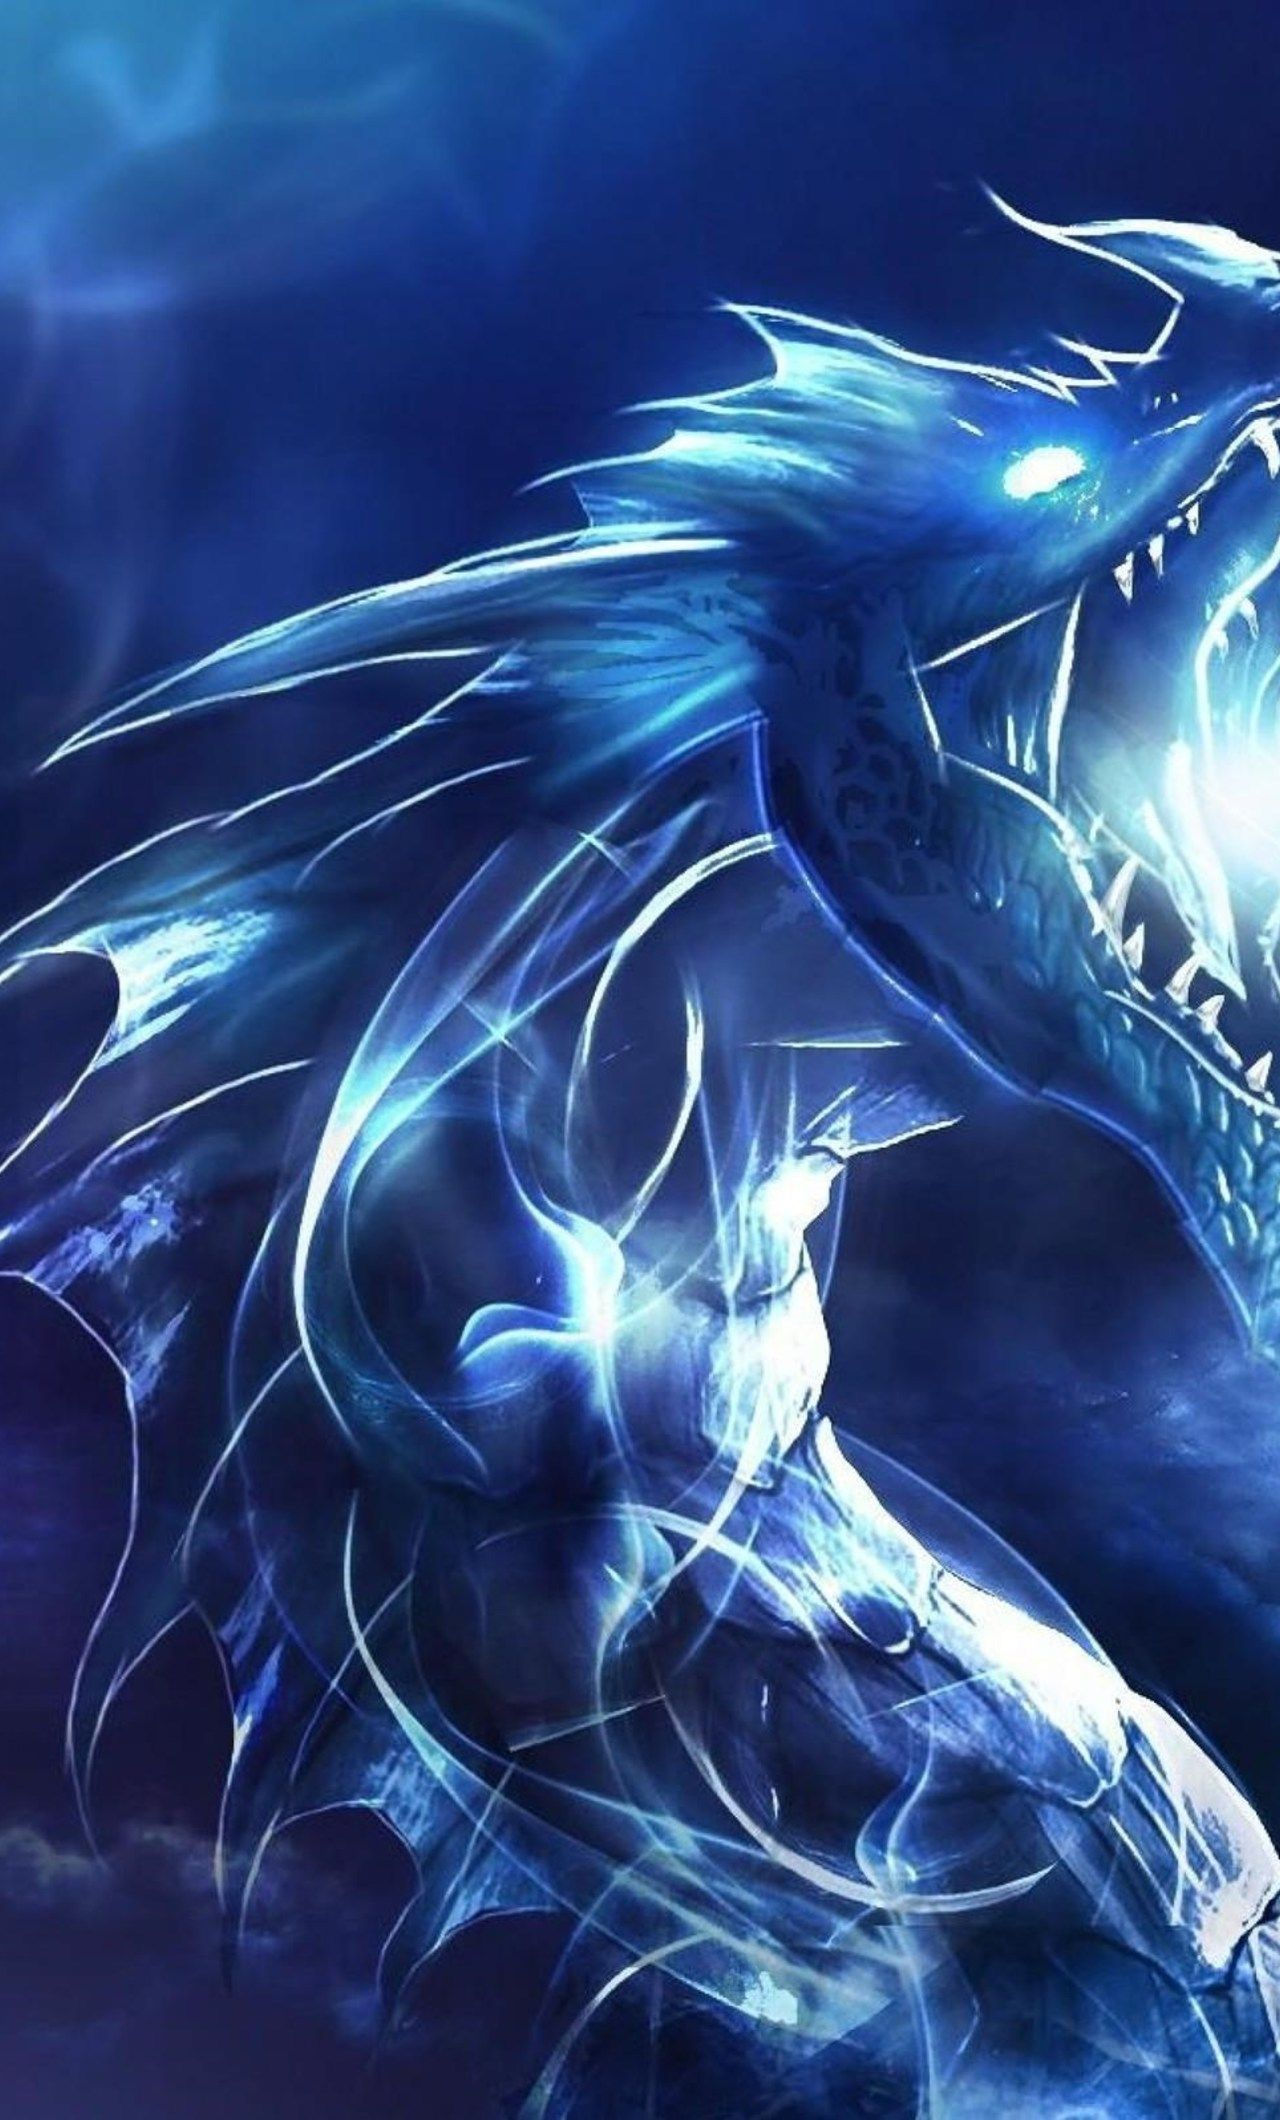 1280x2120 1280x2120 Blue Dragon iPhone 6+ HD 4k Wallpapers, Images ...